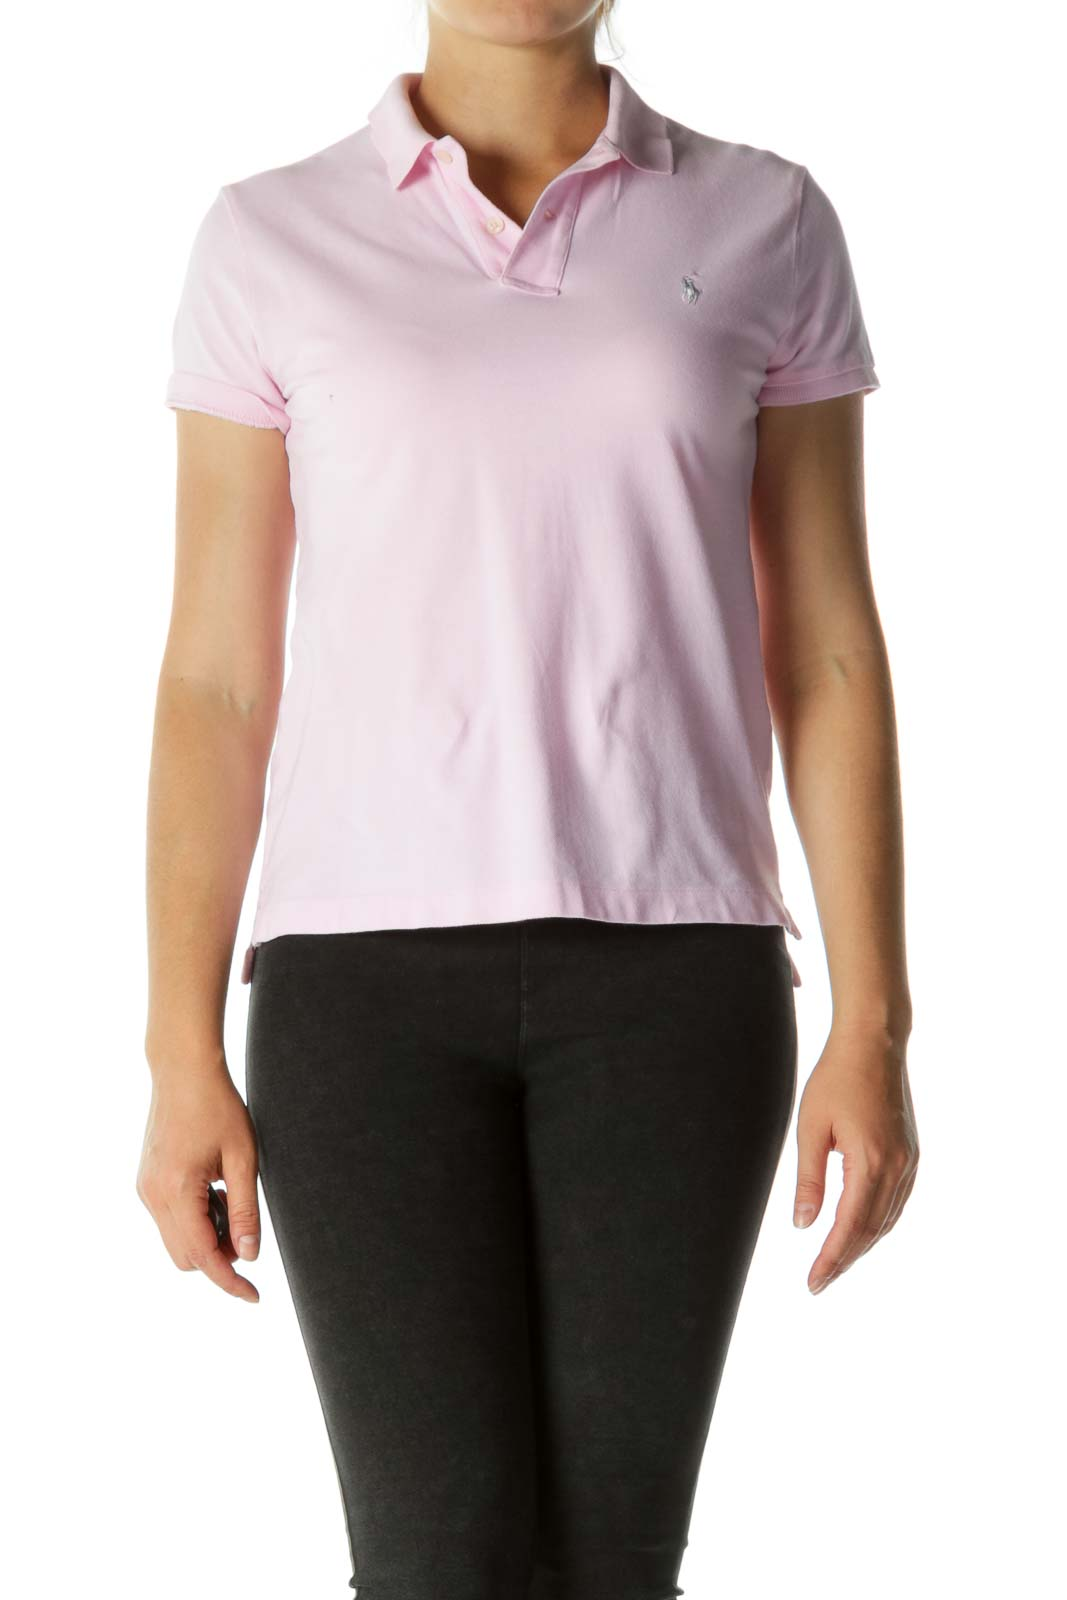 Pink V-neck Short Sleeve Polo Shirt (Car Make Logo Embroidery on Sleeve) Front